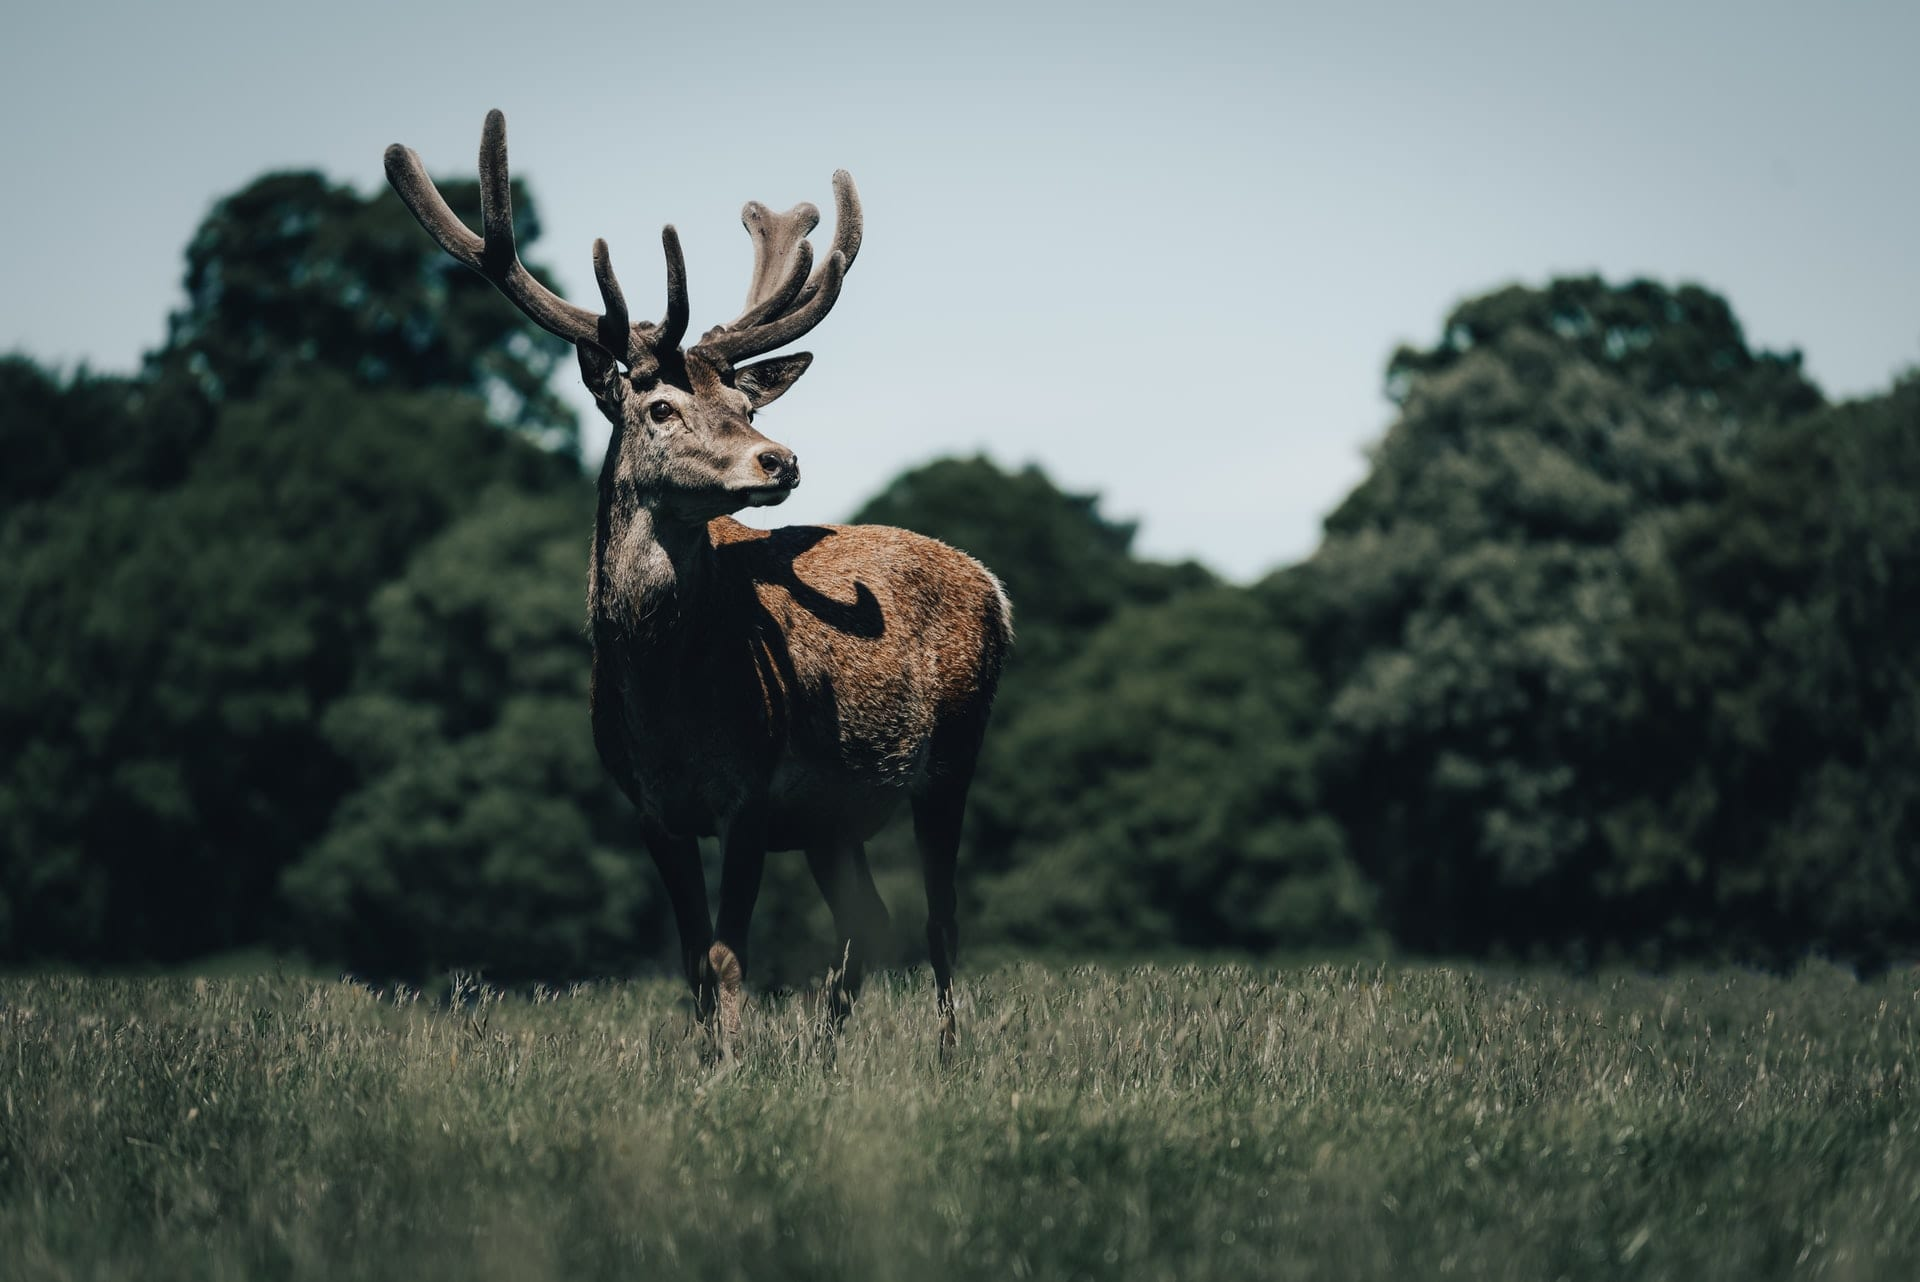 brown-deer-on-green-grass-field-at-dusk-at-wollaton-hall-and-park-nottingham